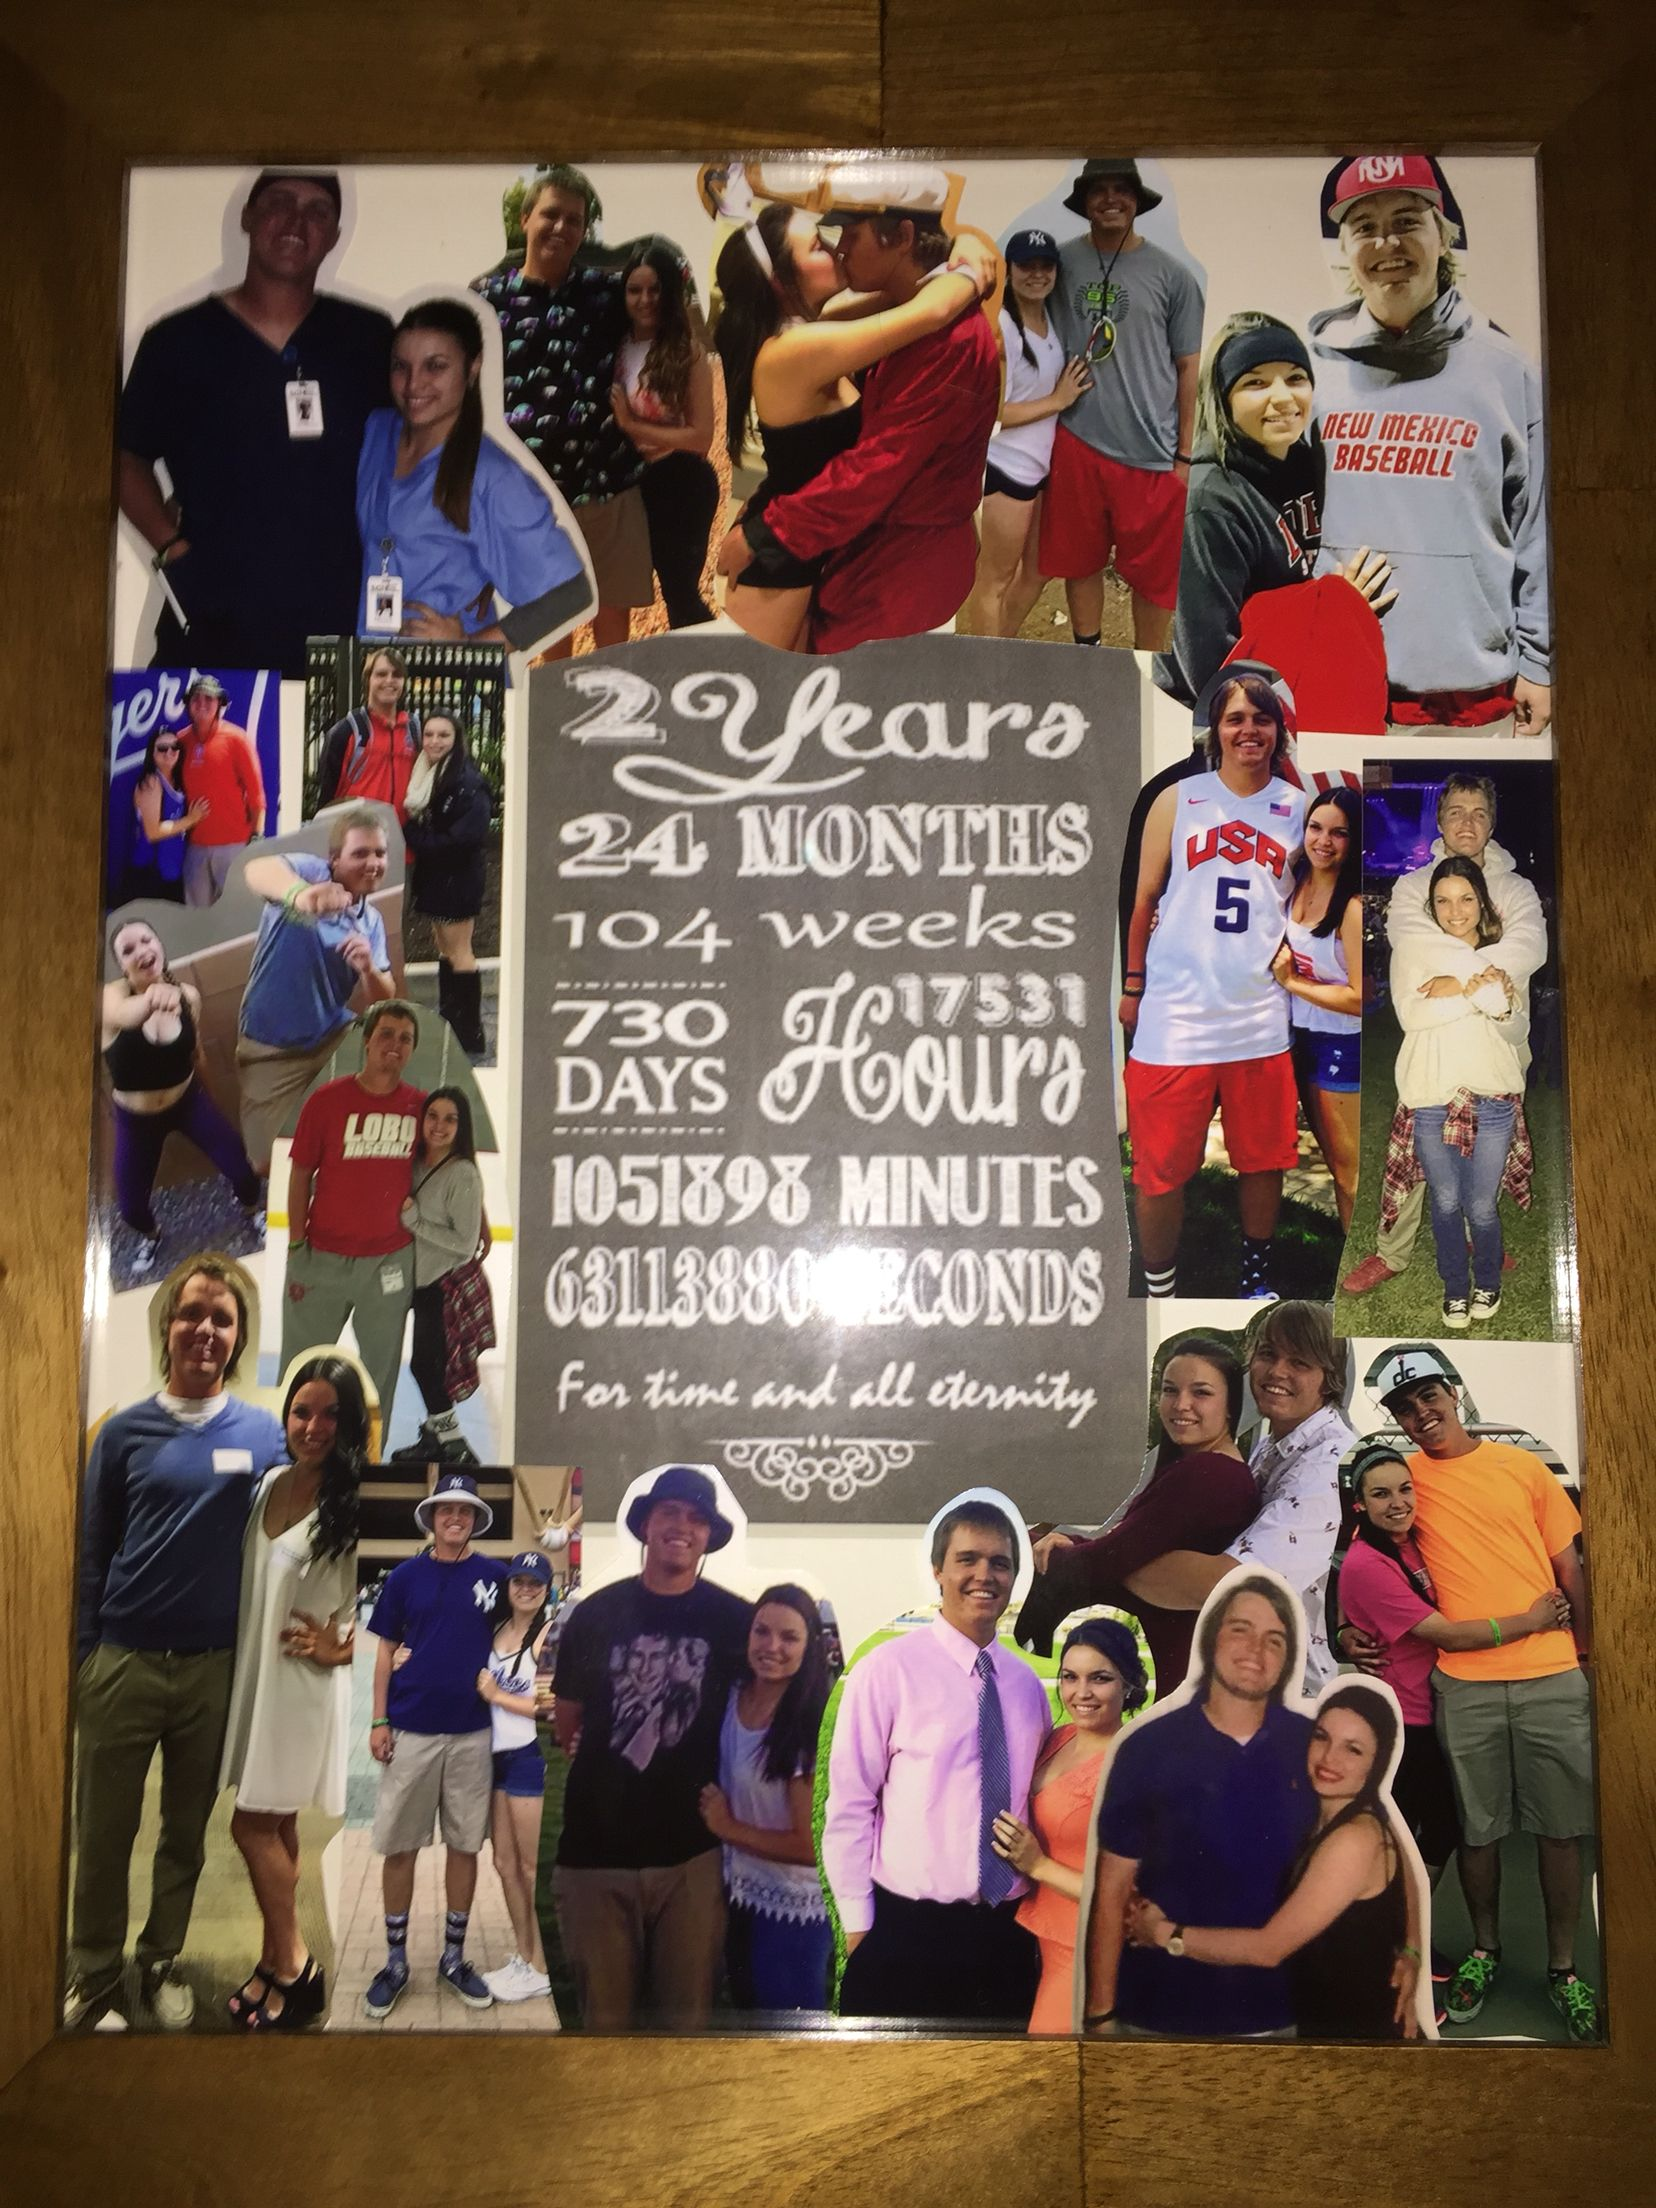 2 year anniversary collage DIY Pinterest